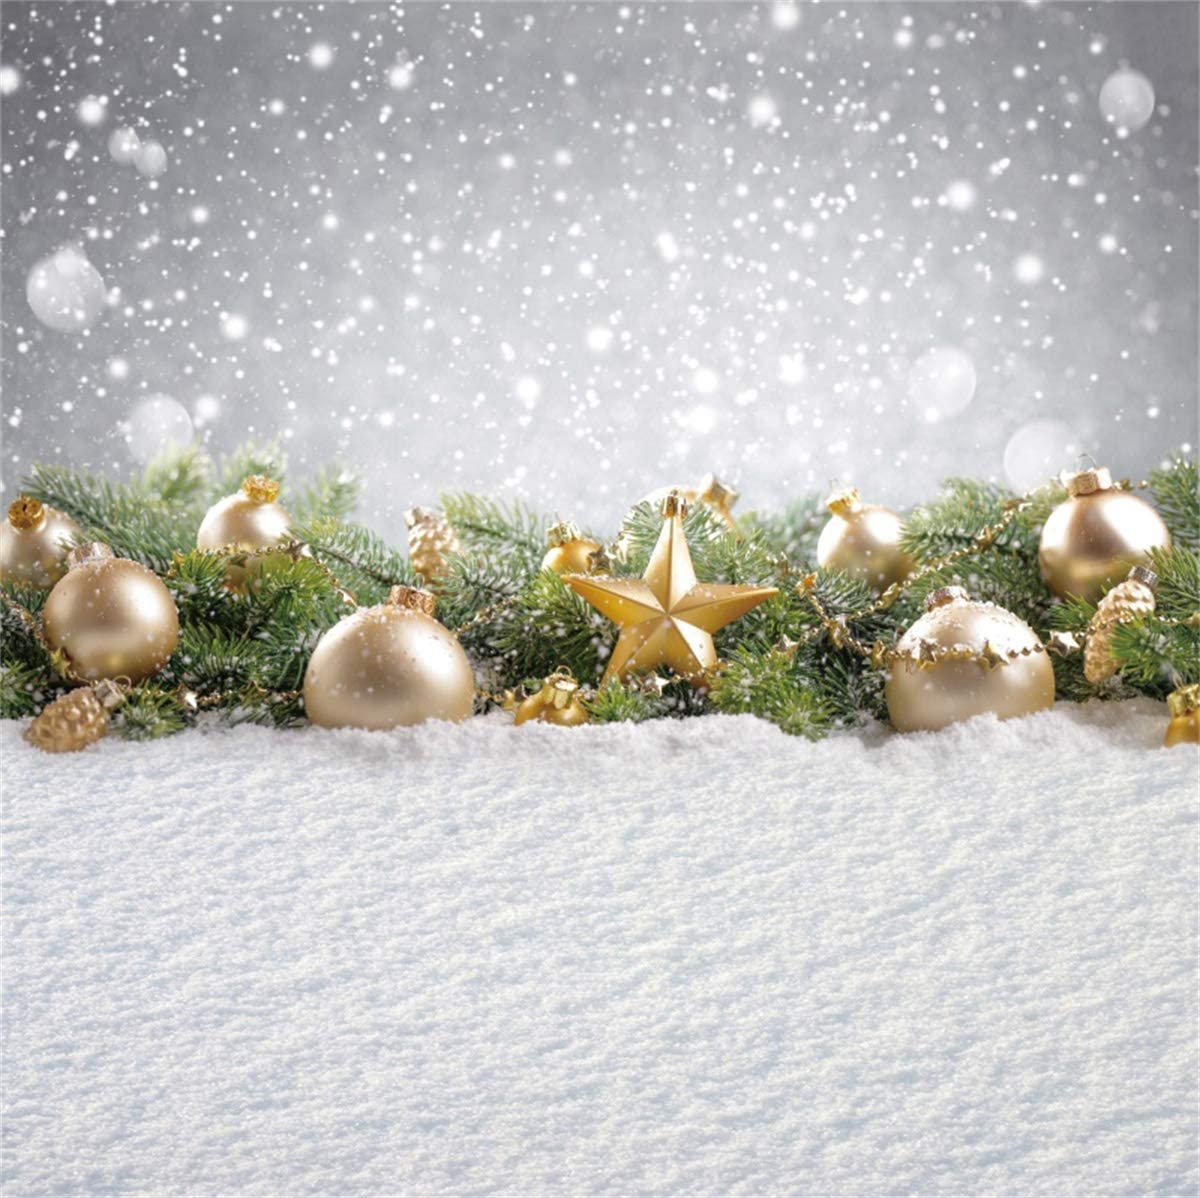 YEELE 10x10ft Merry Christmas Photography Background Green Fir Tree Braches Bird Backdrop Kids Adults Portrait Xmas Holiday Pictures Photo Booth Props Digital Wallpaper